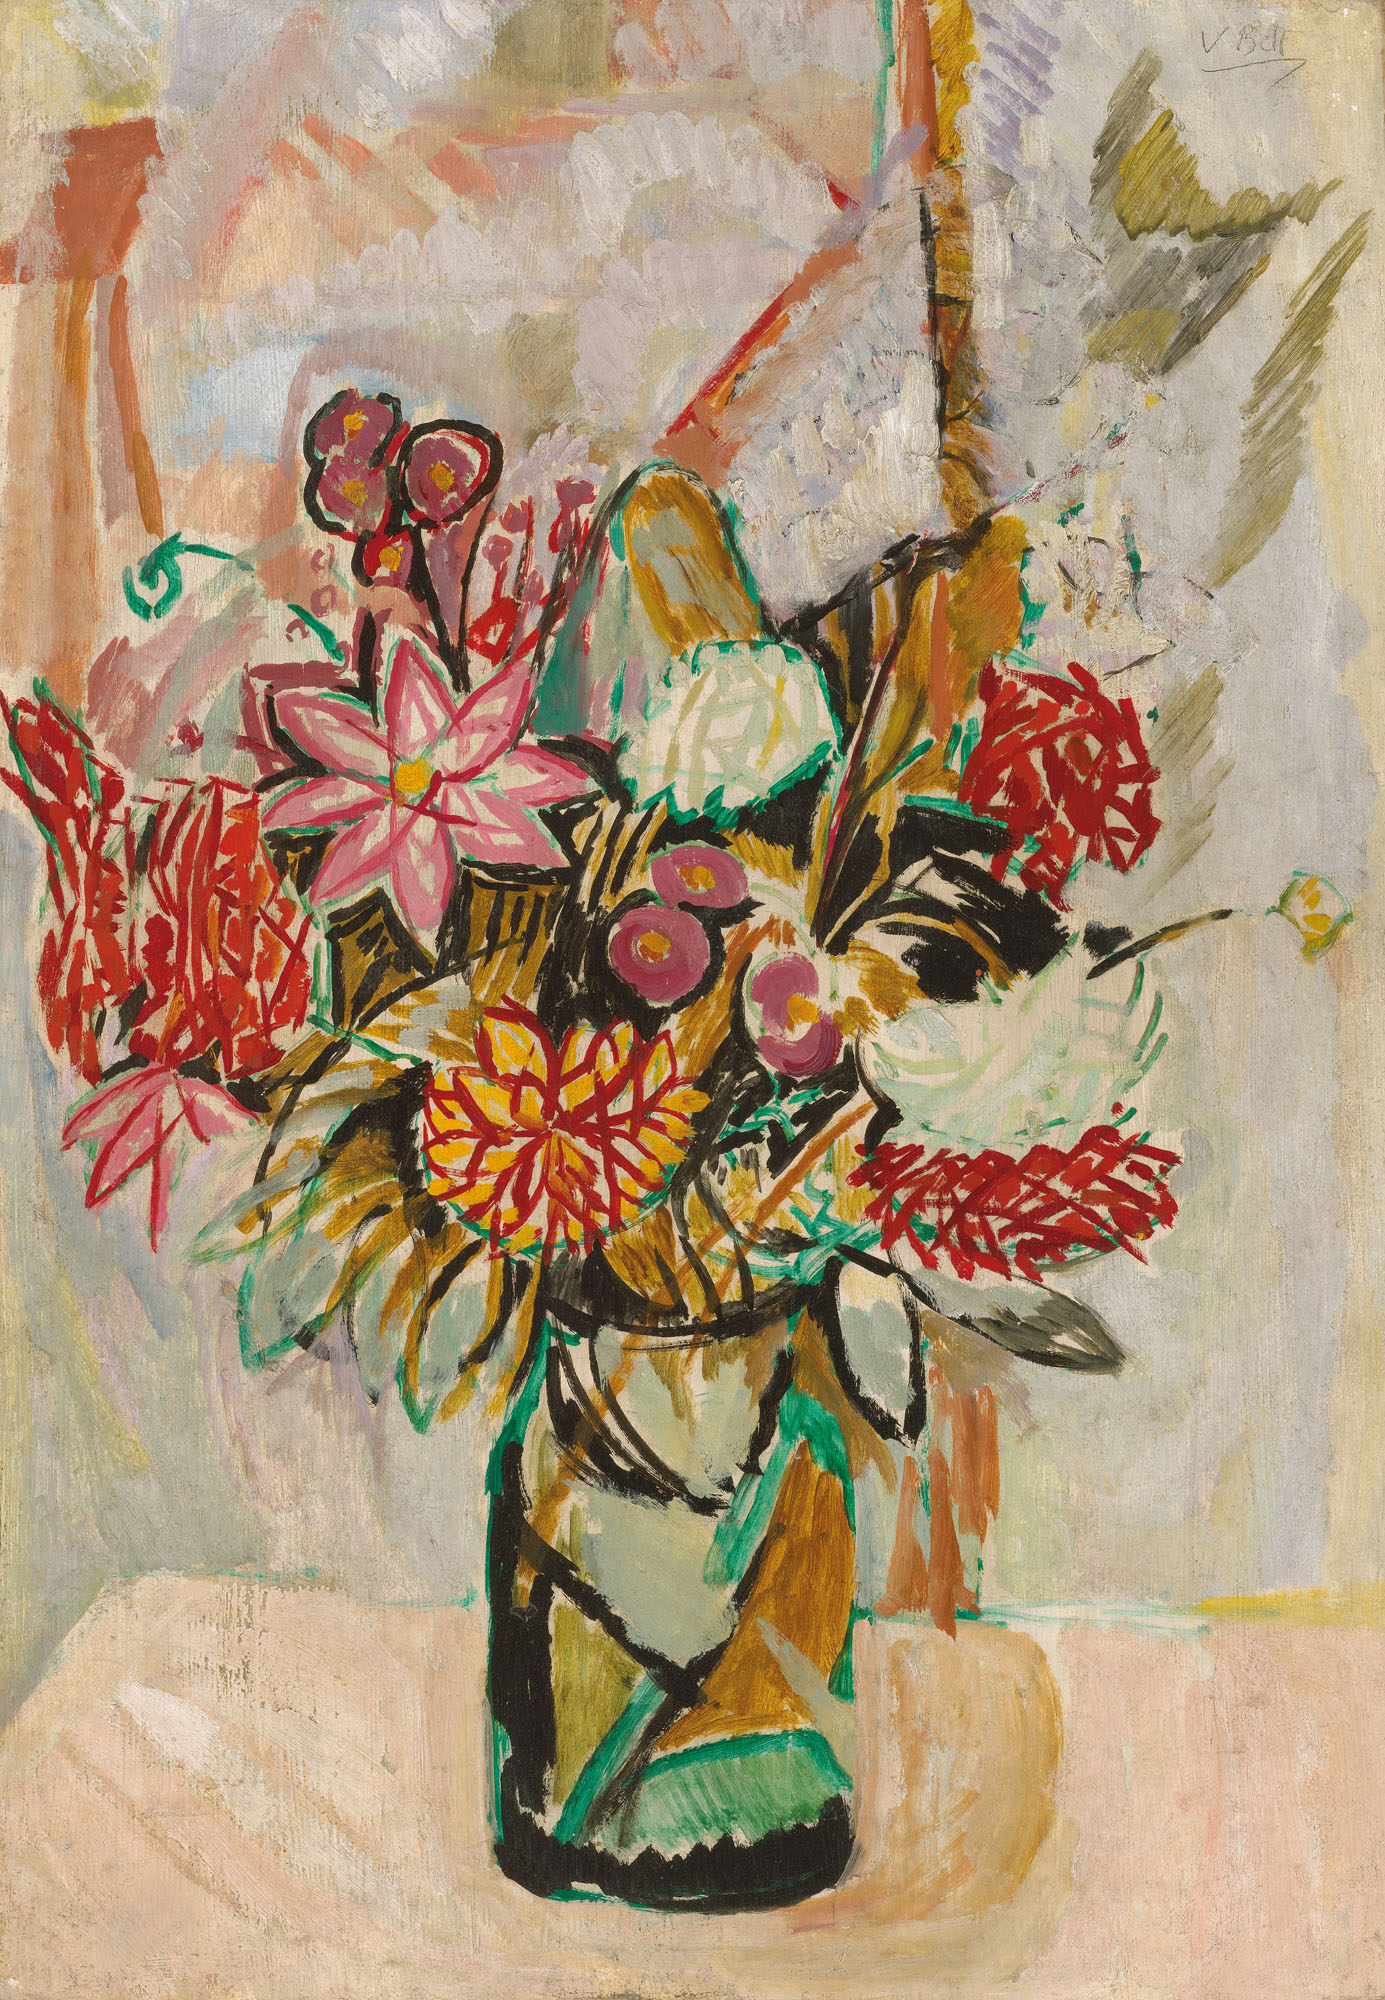 Vanessa Bell (1879-1961),Autumn Bouquet, 1912. Oil on board laid on panel. 28¾ x 20⅜ in (73 x 51.7 cm). Estimate £25,000-35,000. Offered in the Modern British Art Day Saleon 2 March 2021at Christie's in London